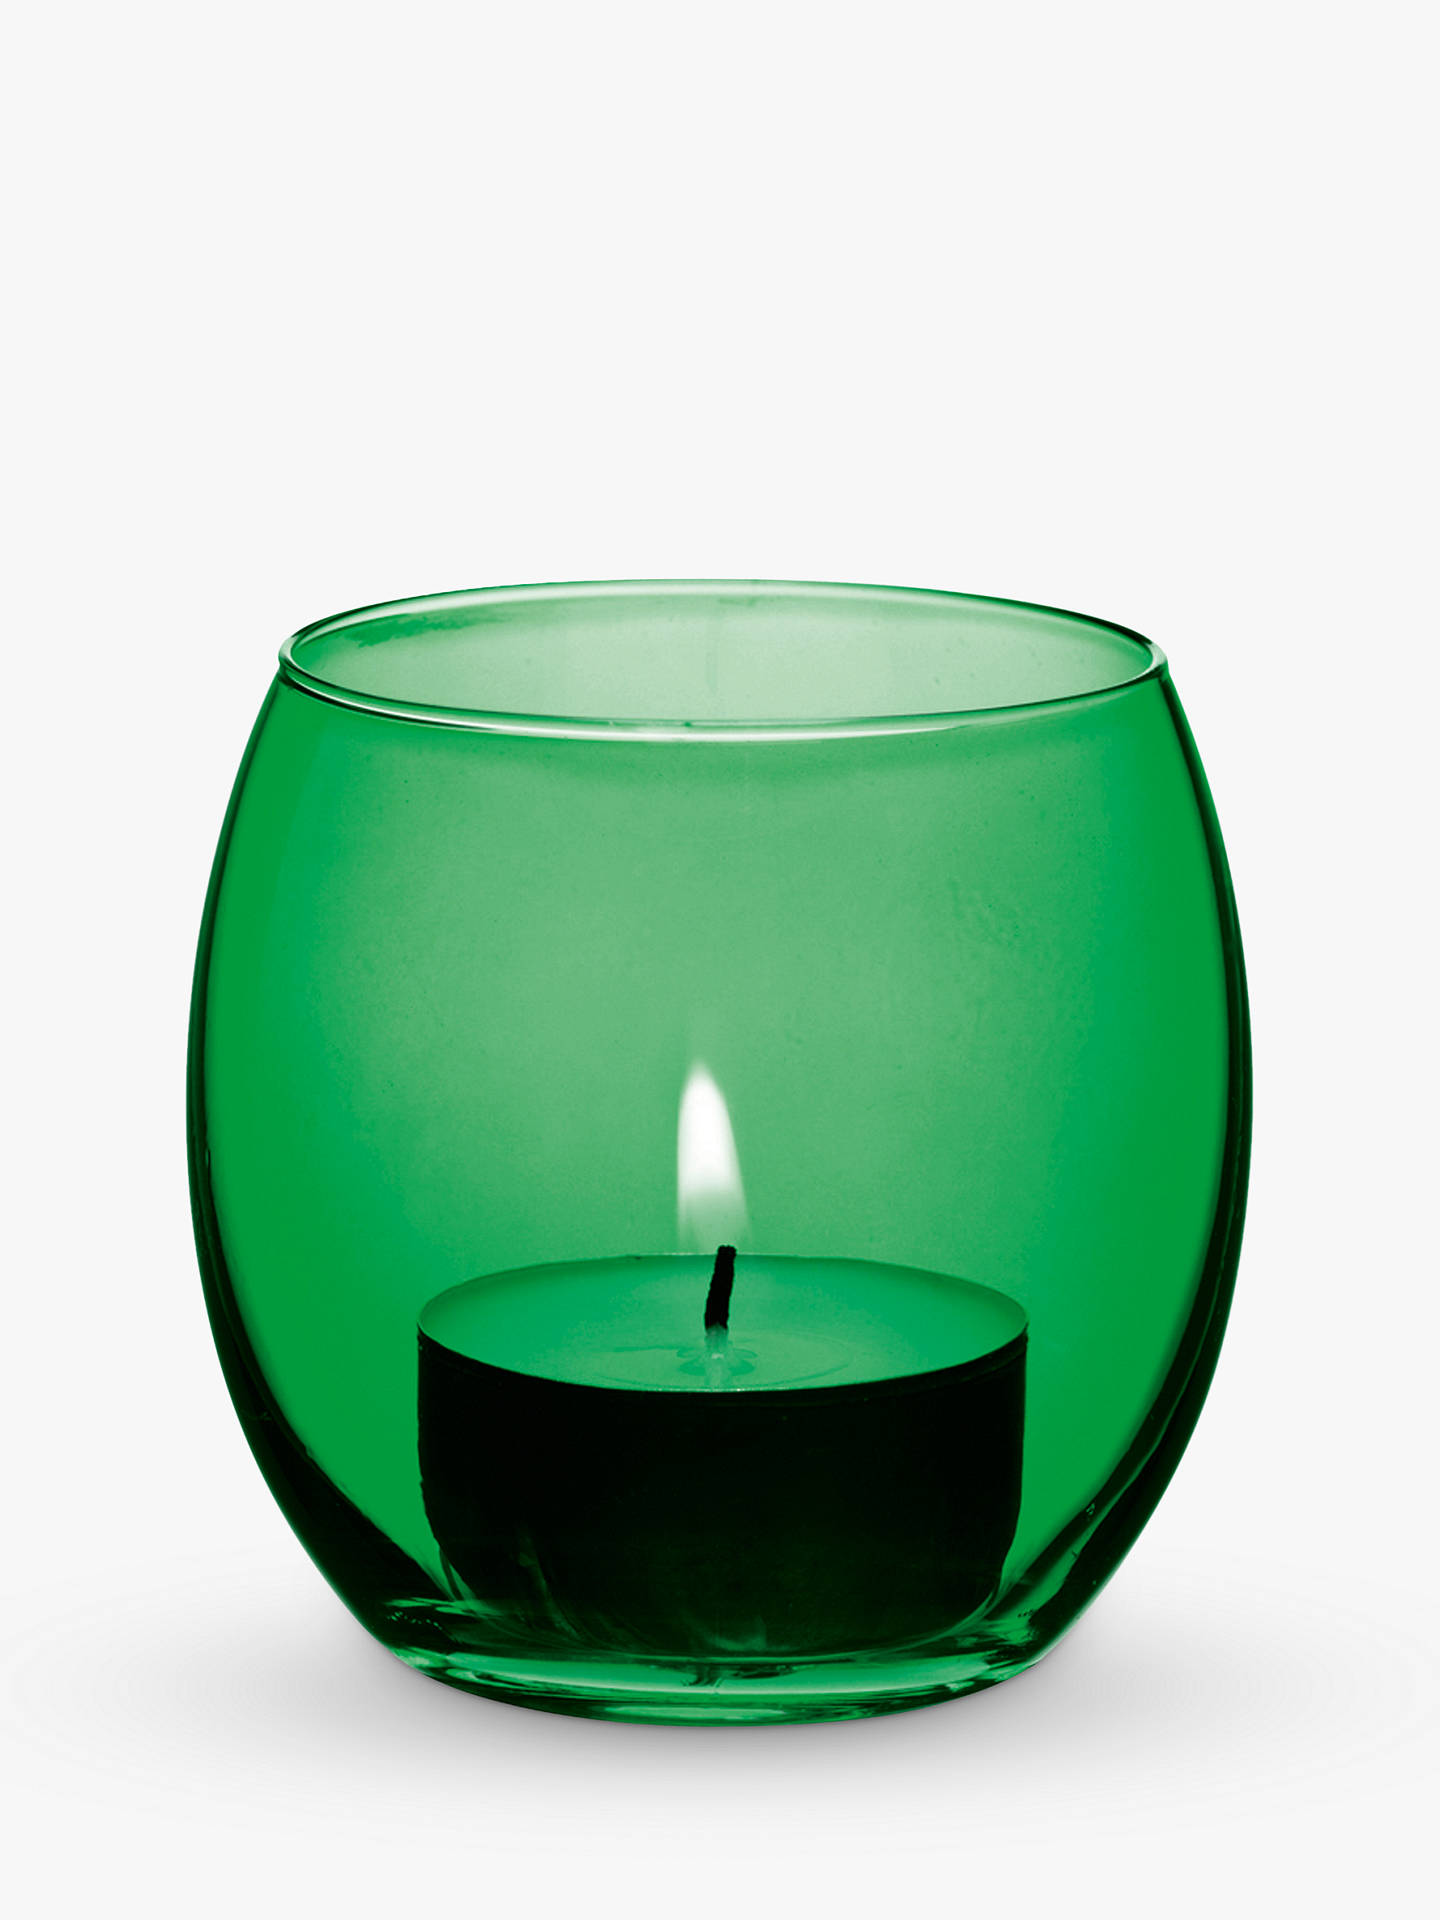 Buy LSA International Coro Tealight Holder, Set of 4, Leaf Online at johnlewis.com